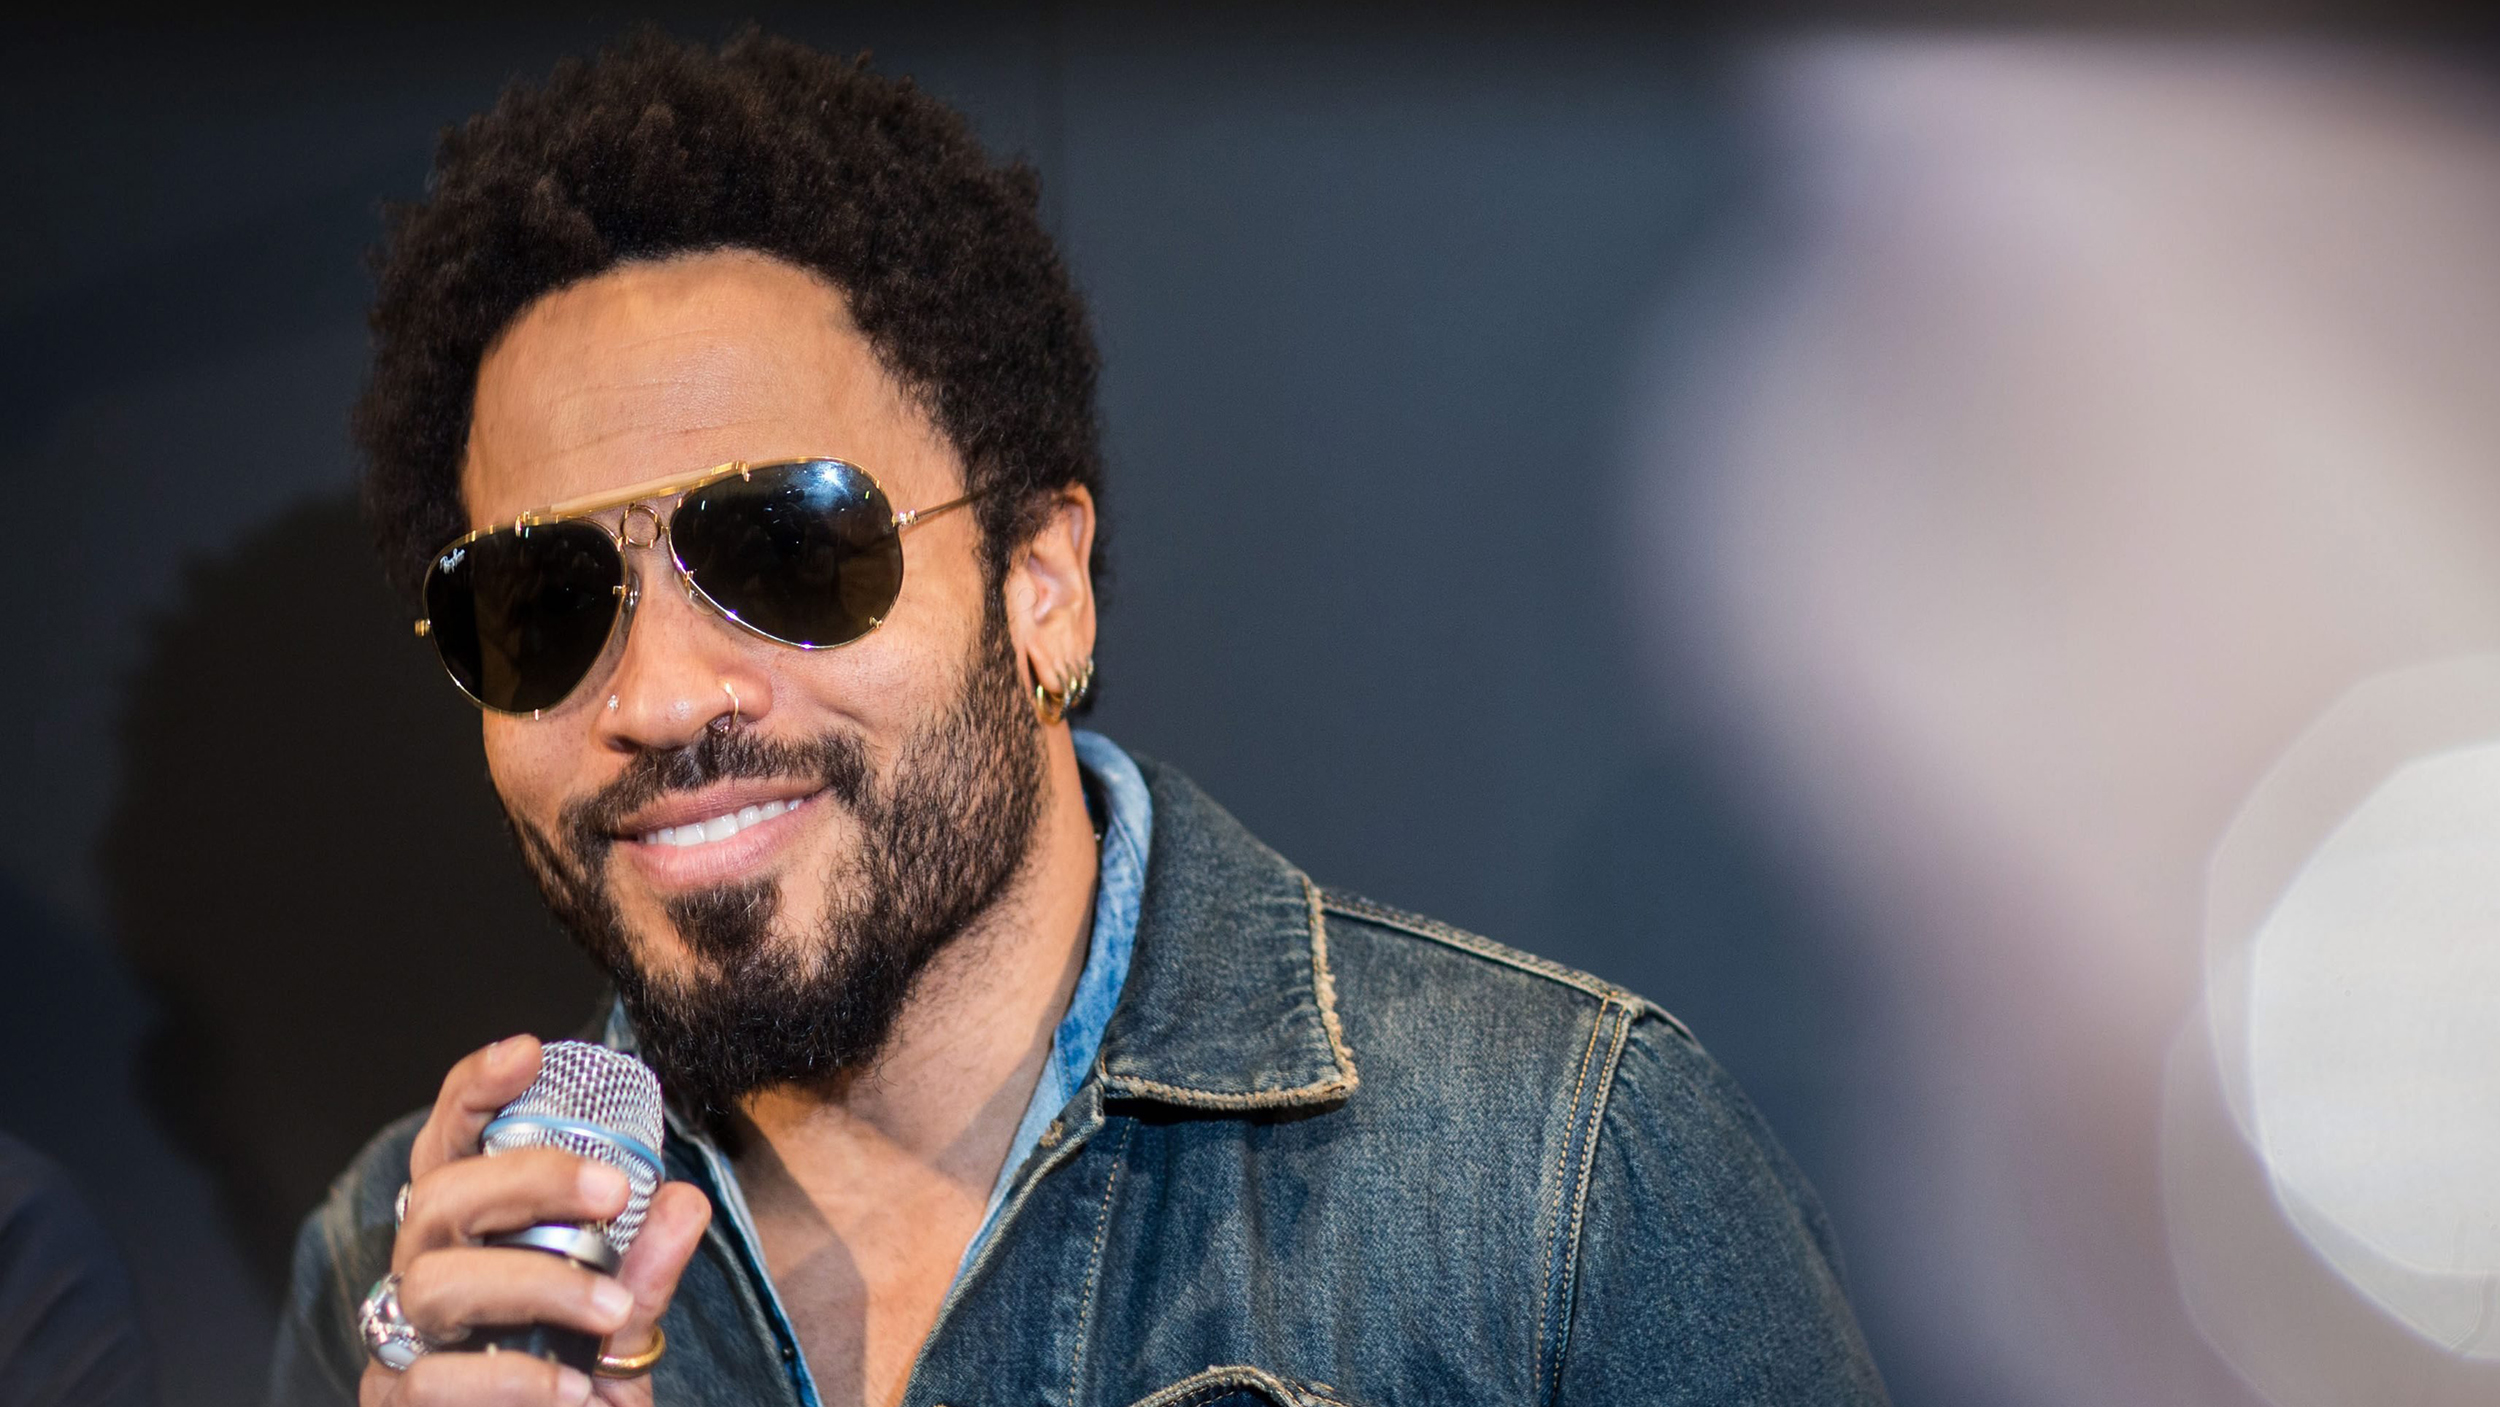 Lenny kravitz splits pants at sweden show flashes crowd today com